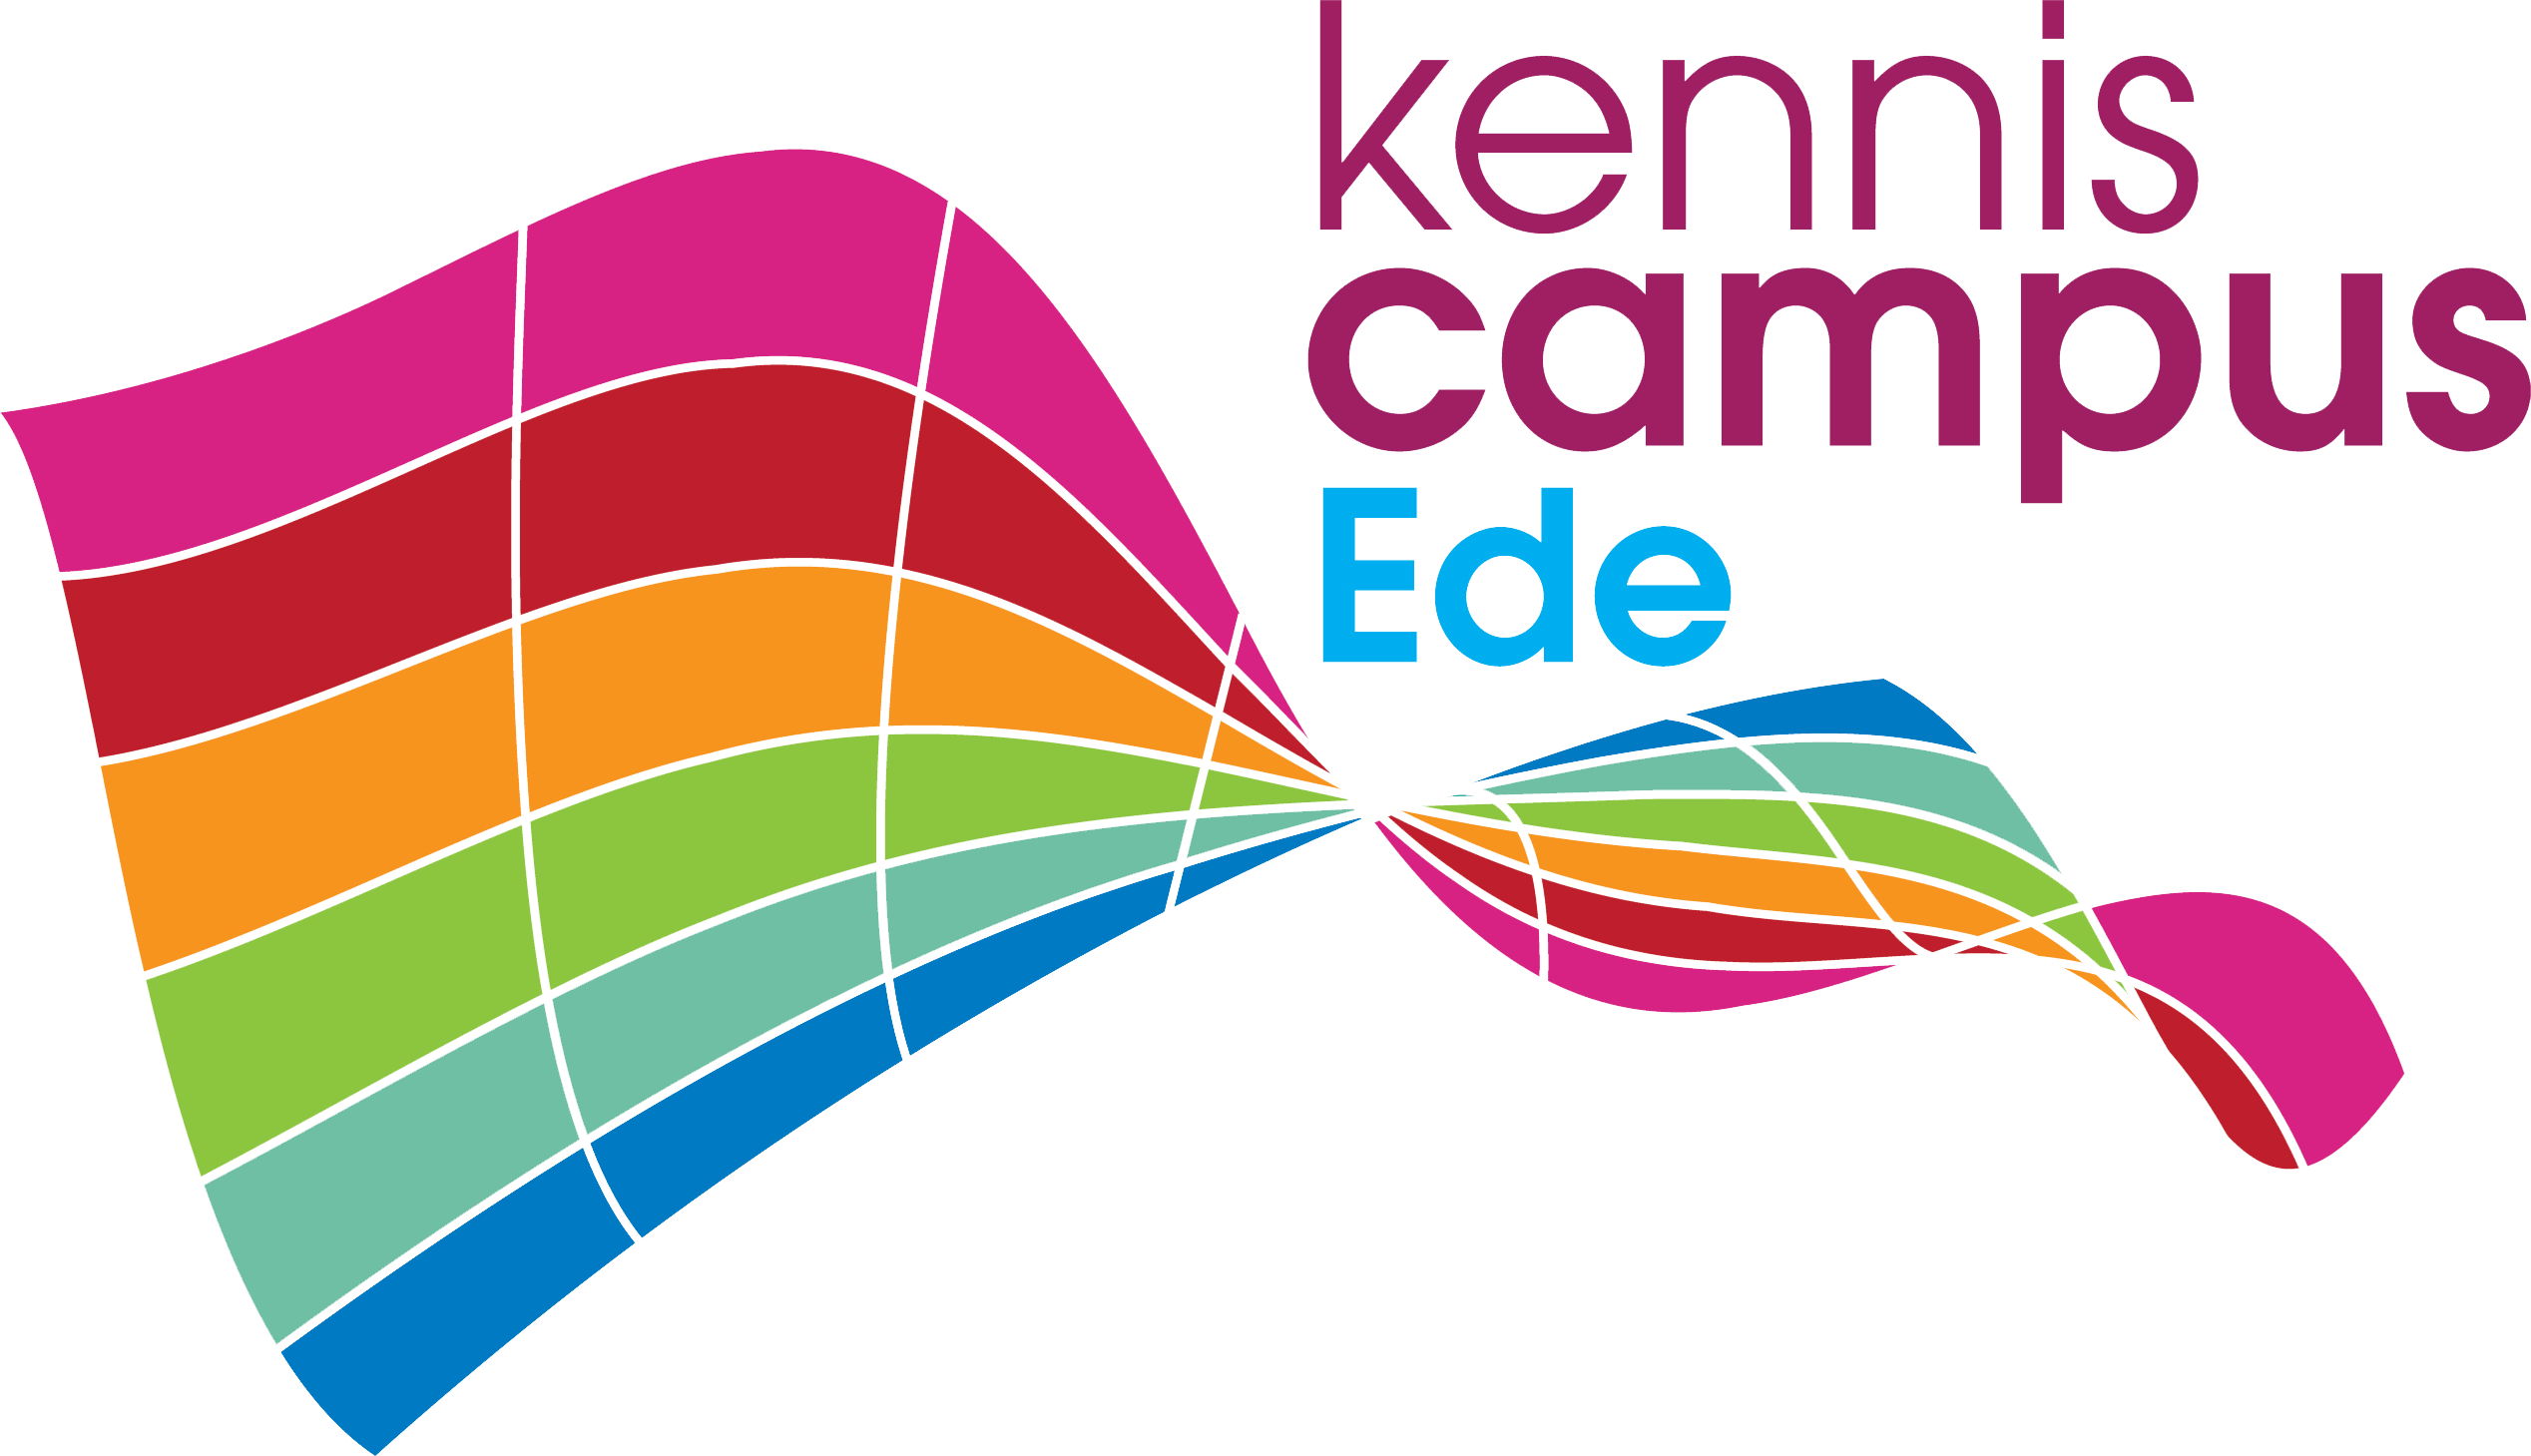 Kenniscampus Ede